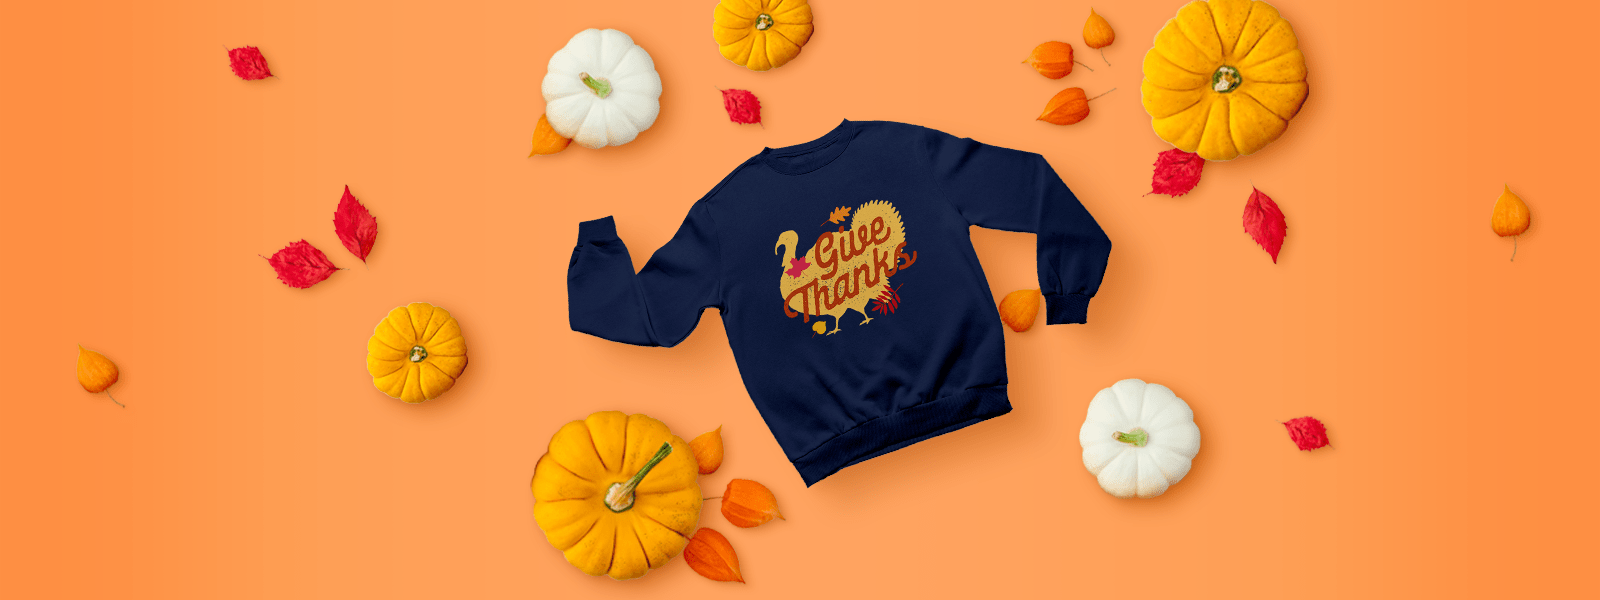 5 Best Thanksgiving Home Decor and Apparel